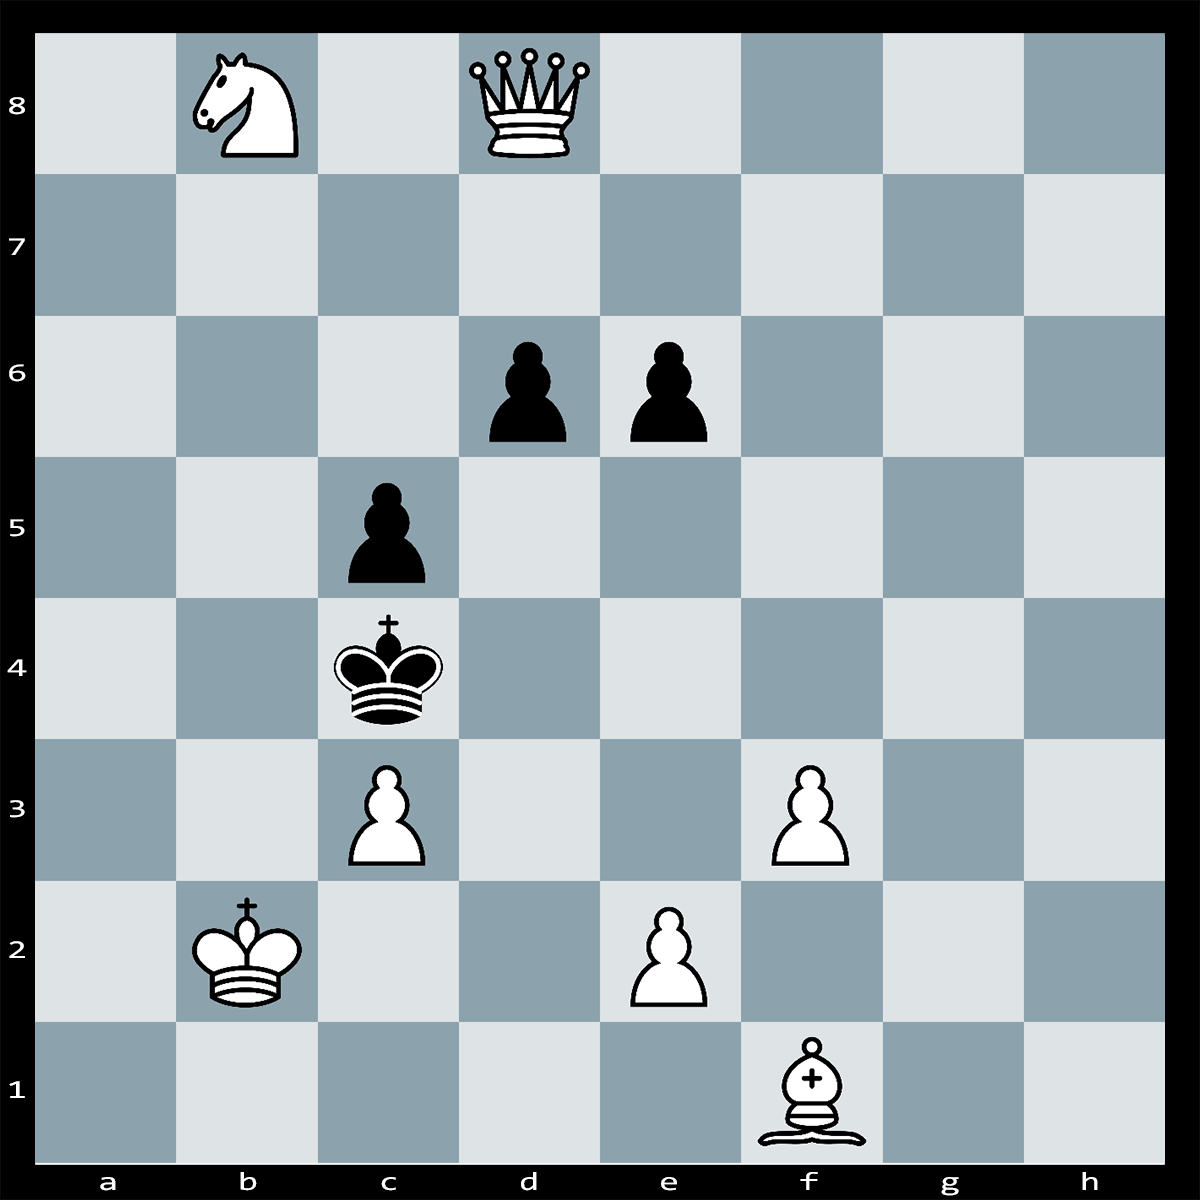 Mate in one Move, White to Play | Chess Puzzle #192